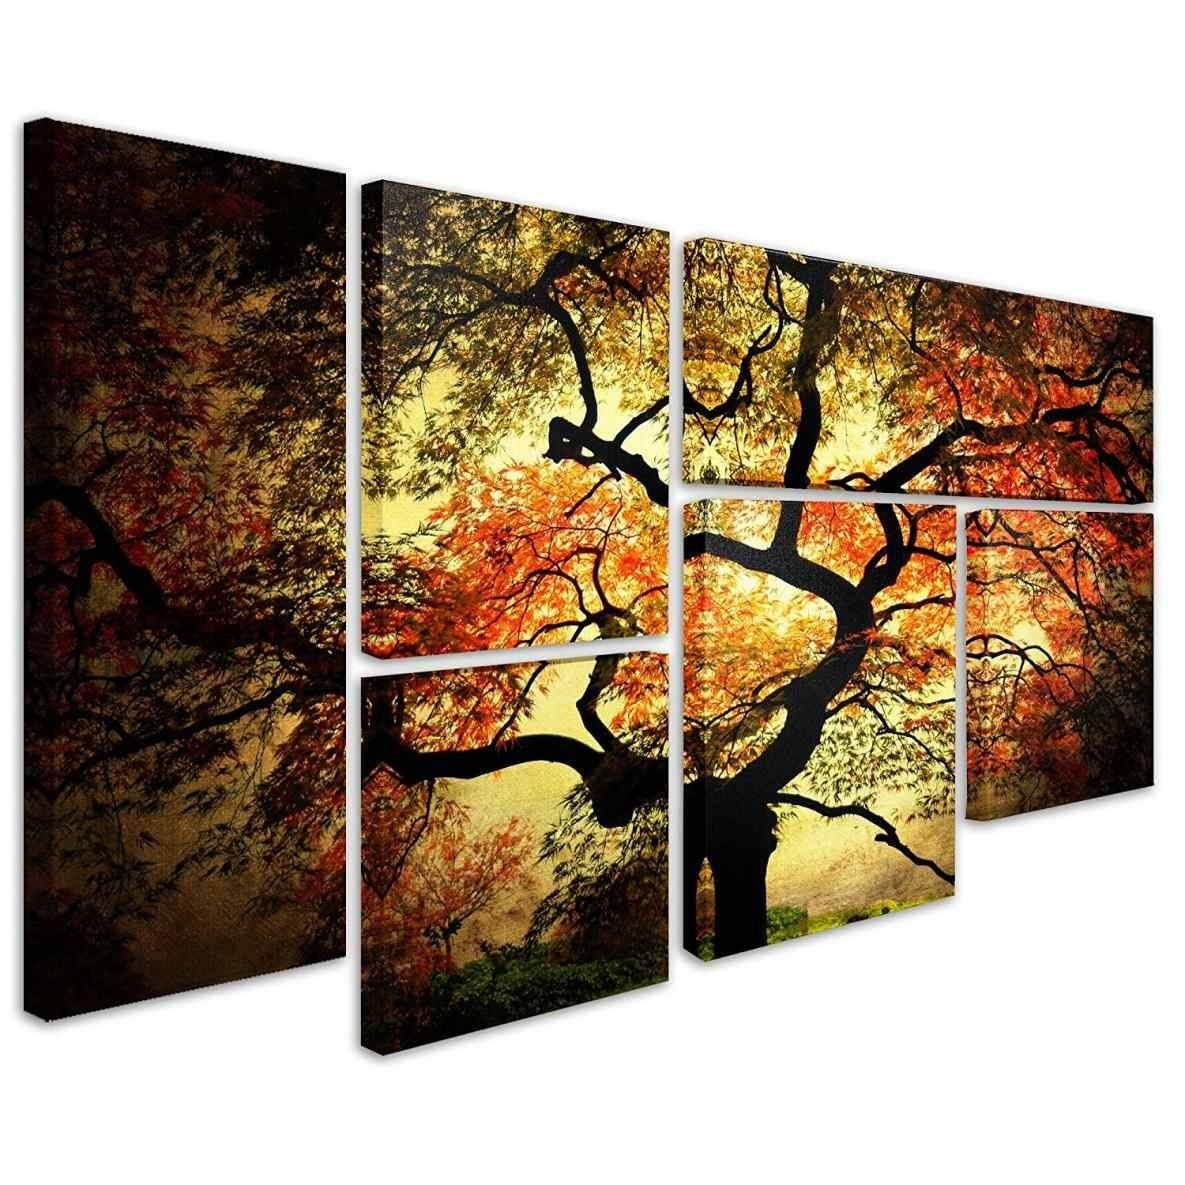 Birds Perchedflowers Set Wall Multiple Piece Canvas Wall Art Inside Most Popular Multiple Panel Wall Art (View 7 of 20)